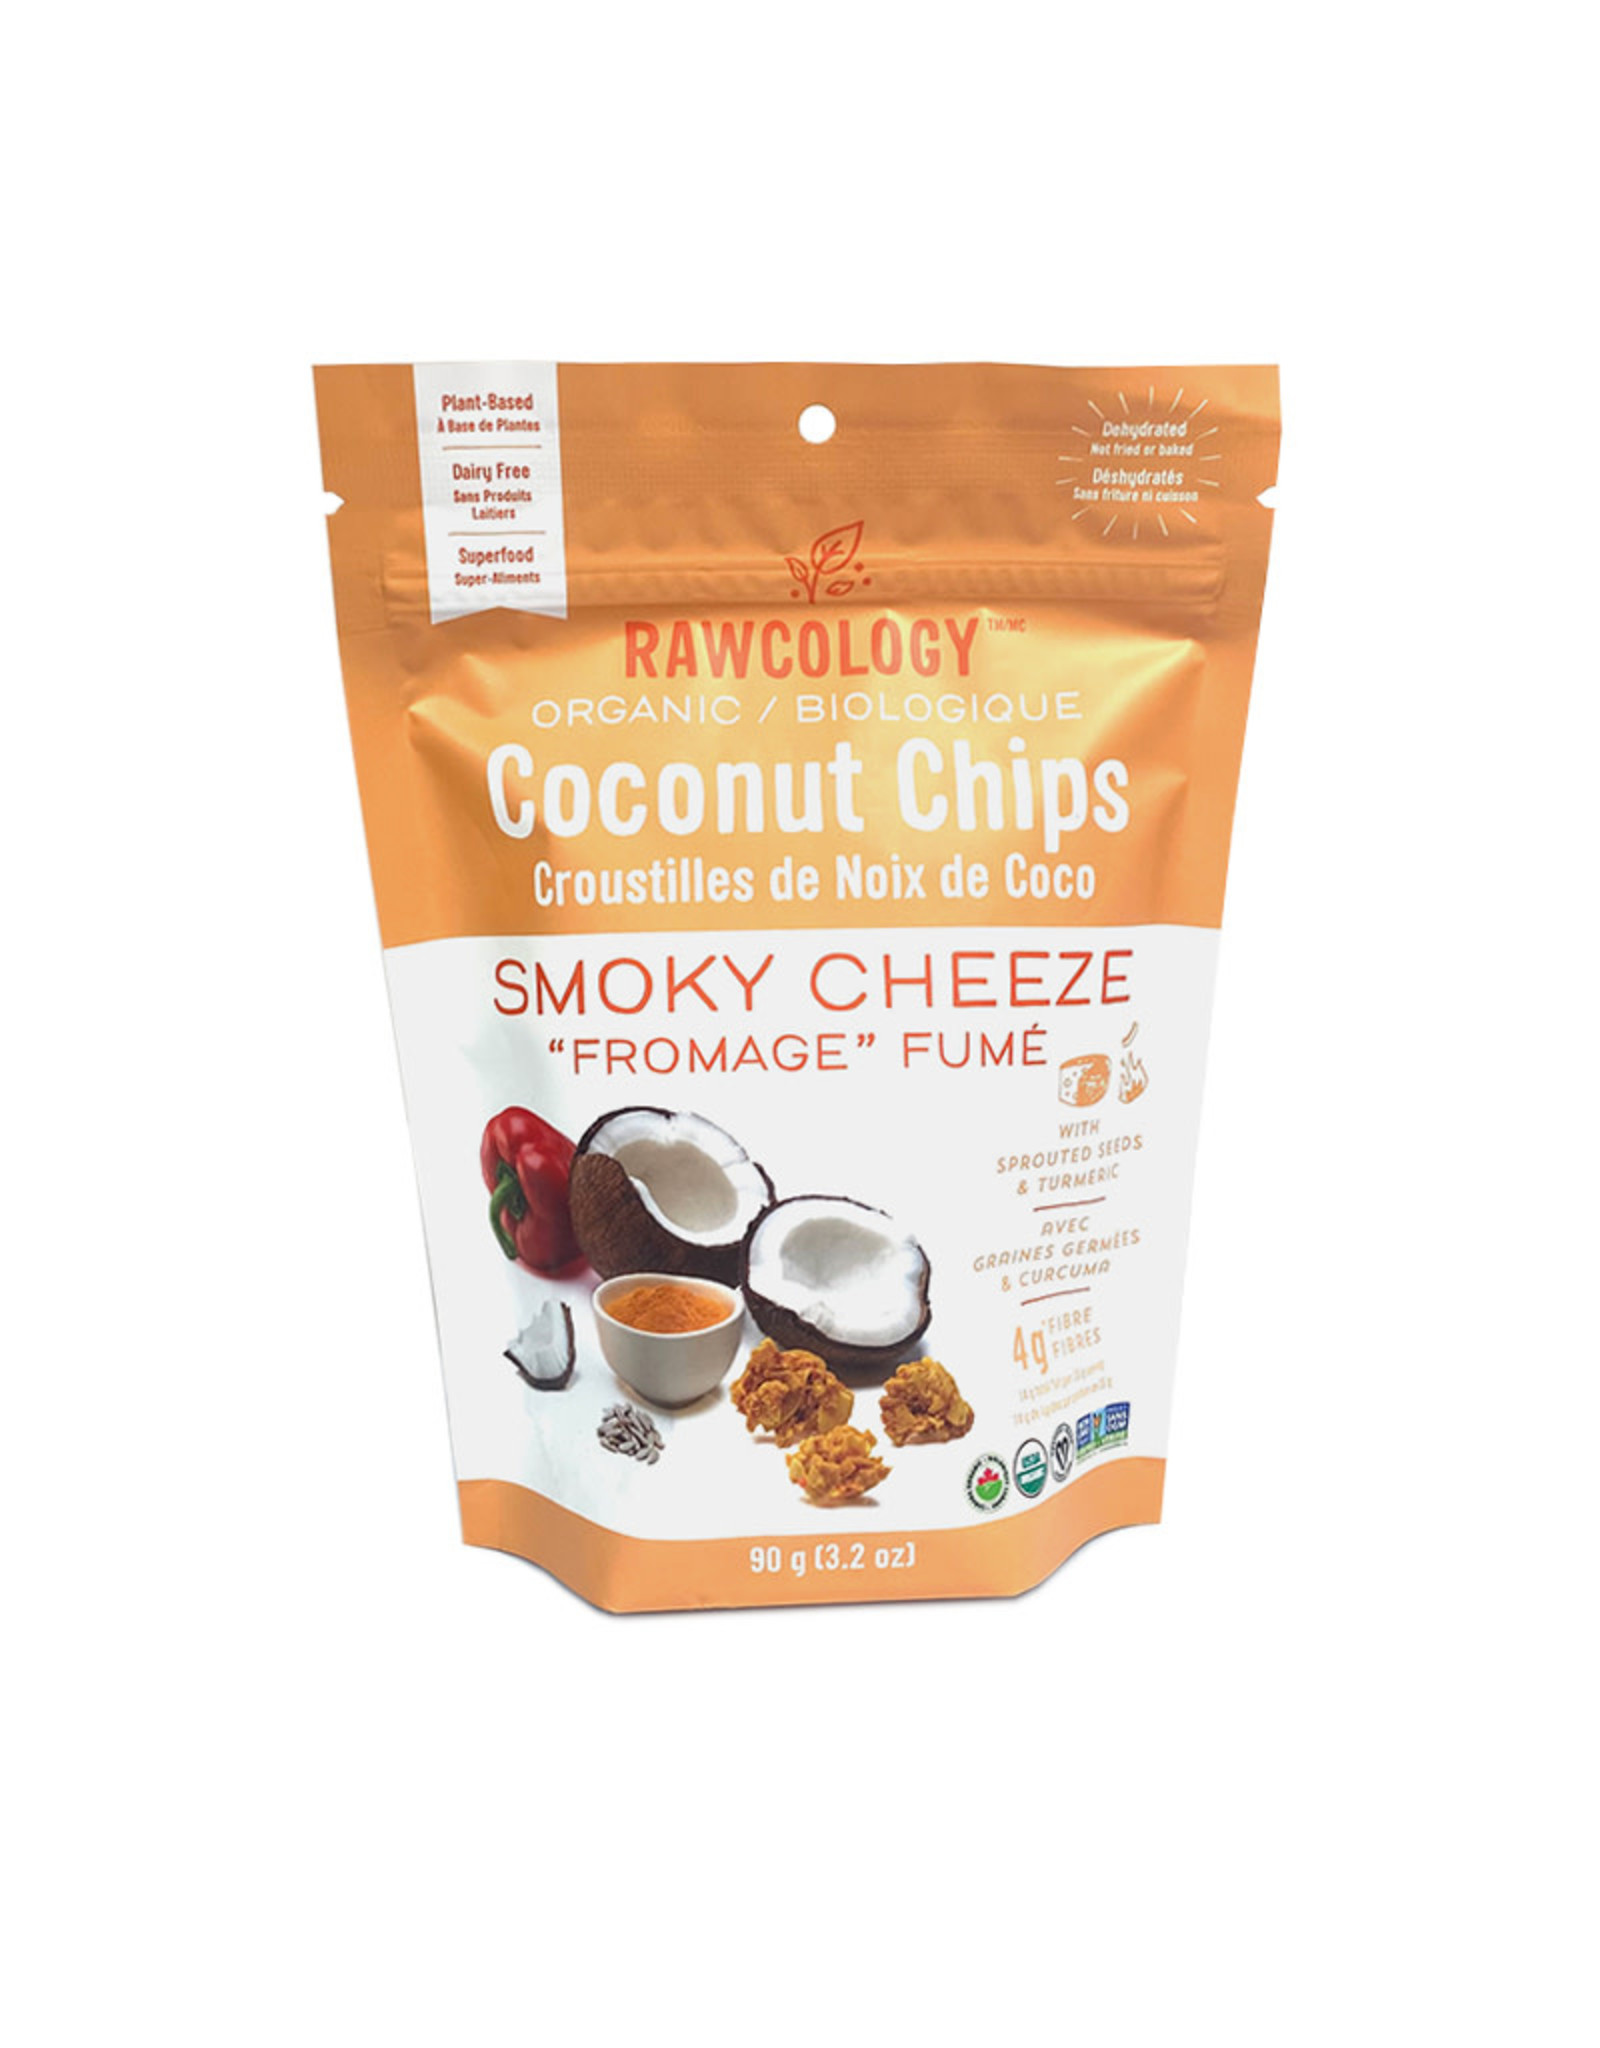 Rawcology Rawcology - Coconut Chips, Smoky Cheeze (90g)